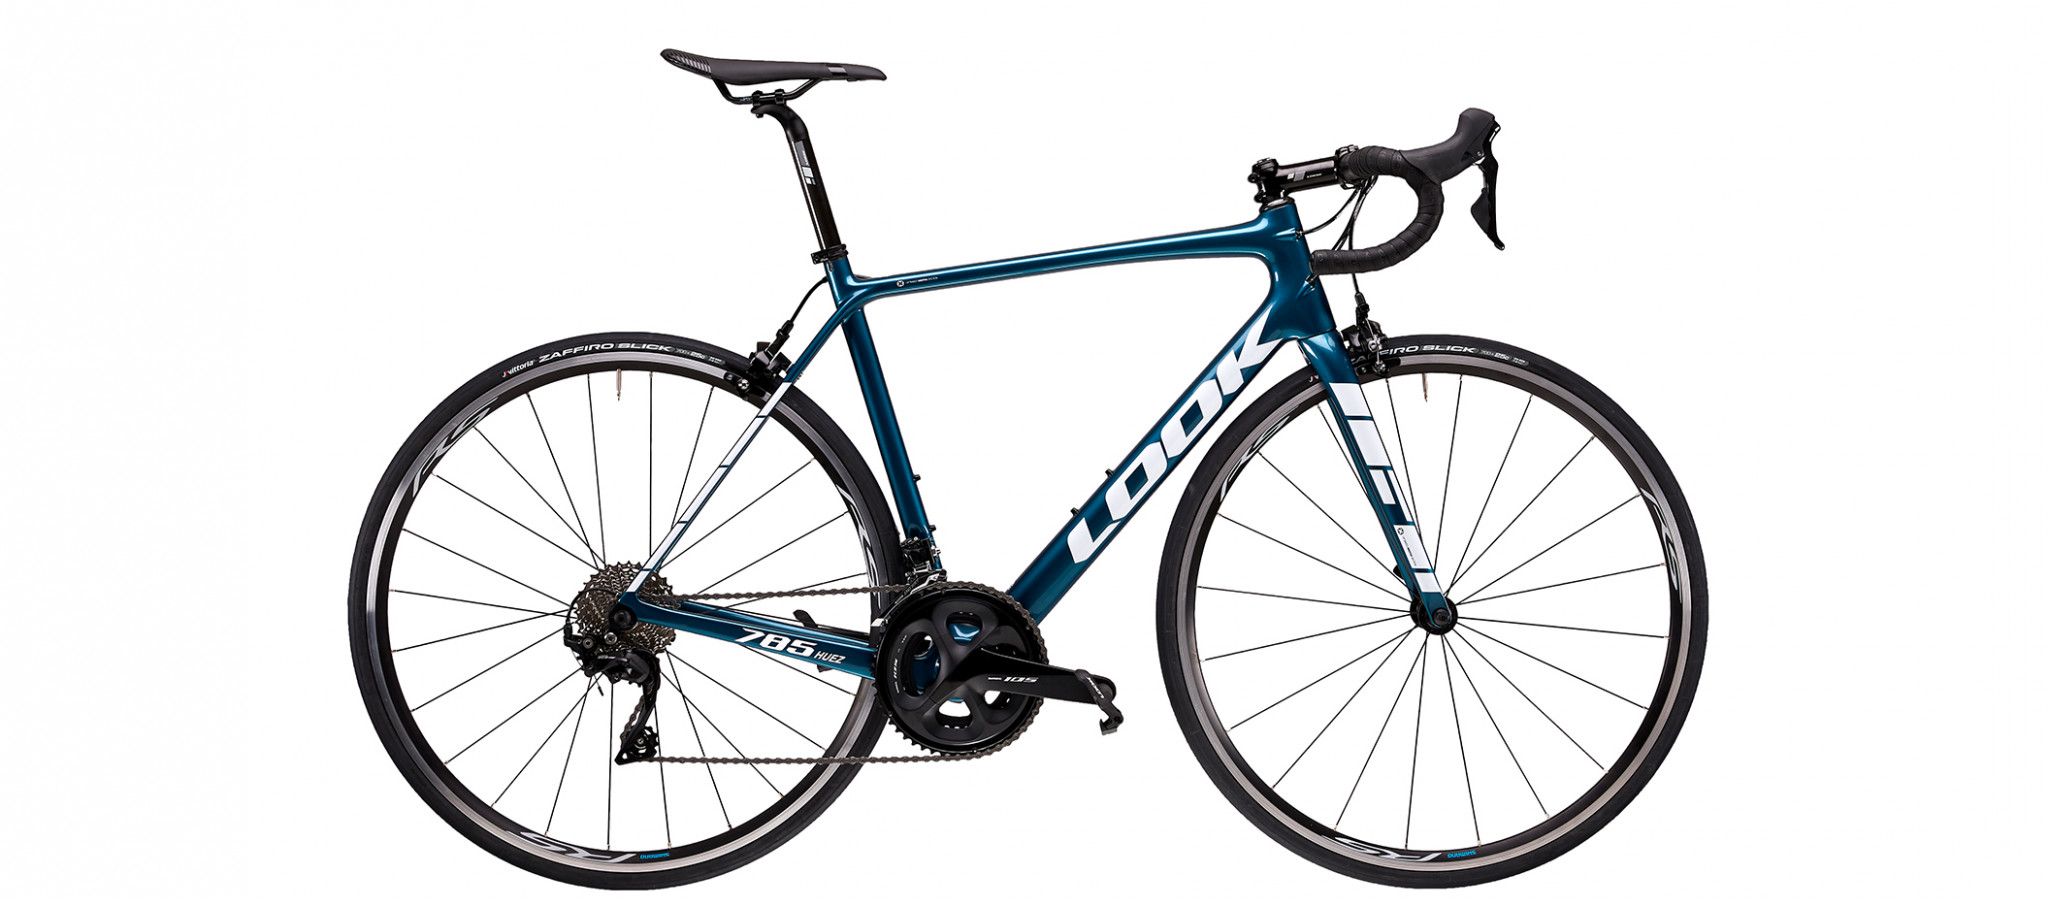 785 HUEZ METALLIC BLUE GLOSSY by Look bikes